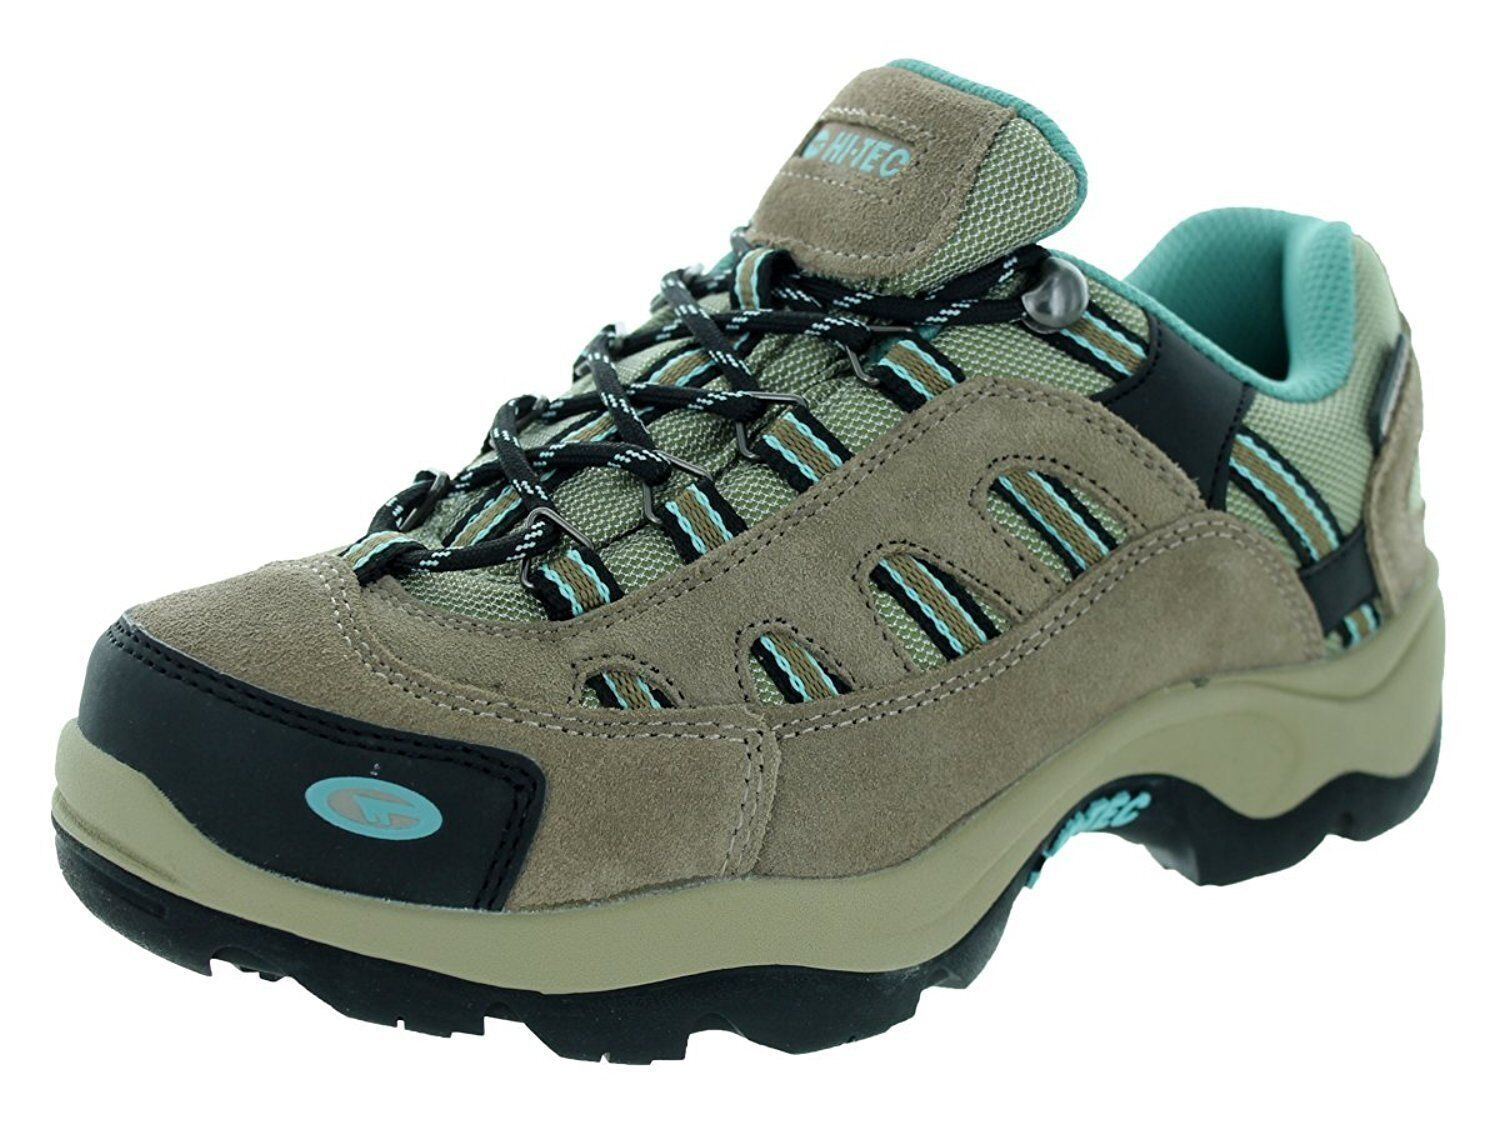 NEW Hi-Tec Womens Taupe/Dusty Mint Leather Bandera Low WP Hiking Shoes Size 8